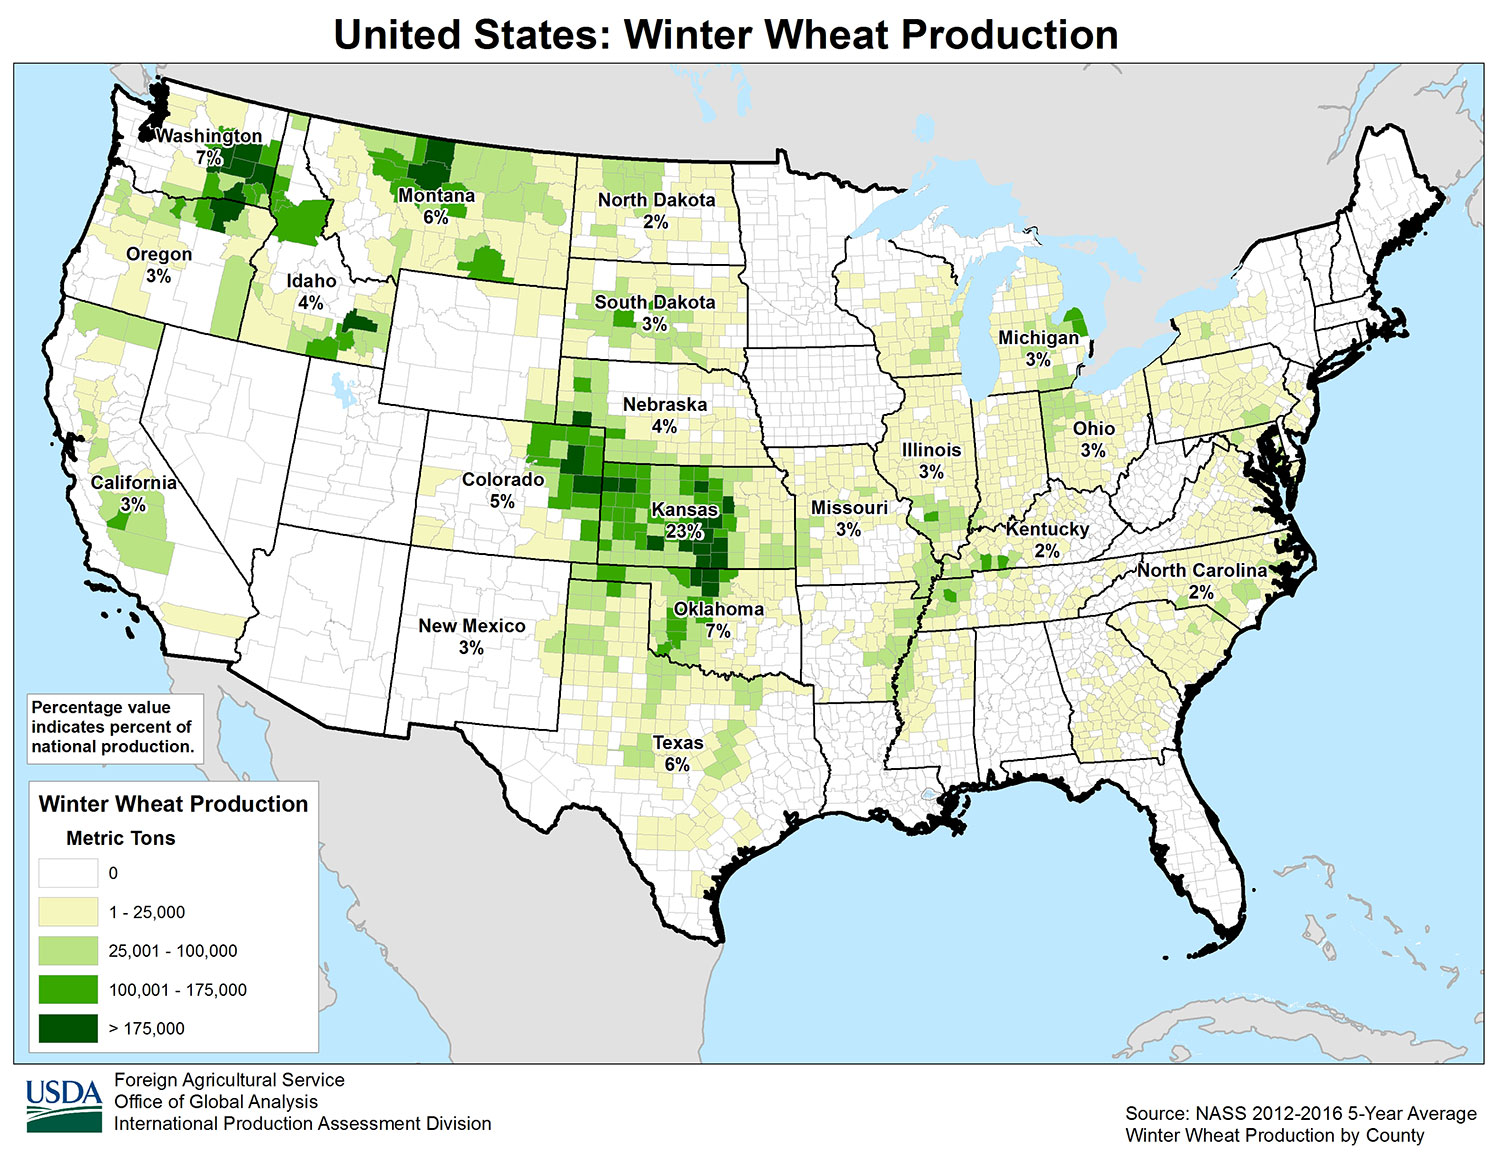 USDA Winter Wheat Production in the United States